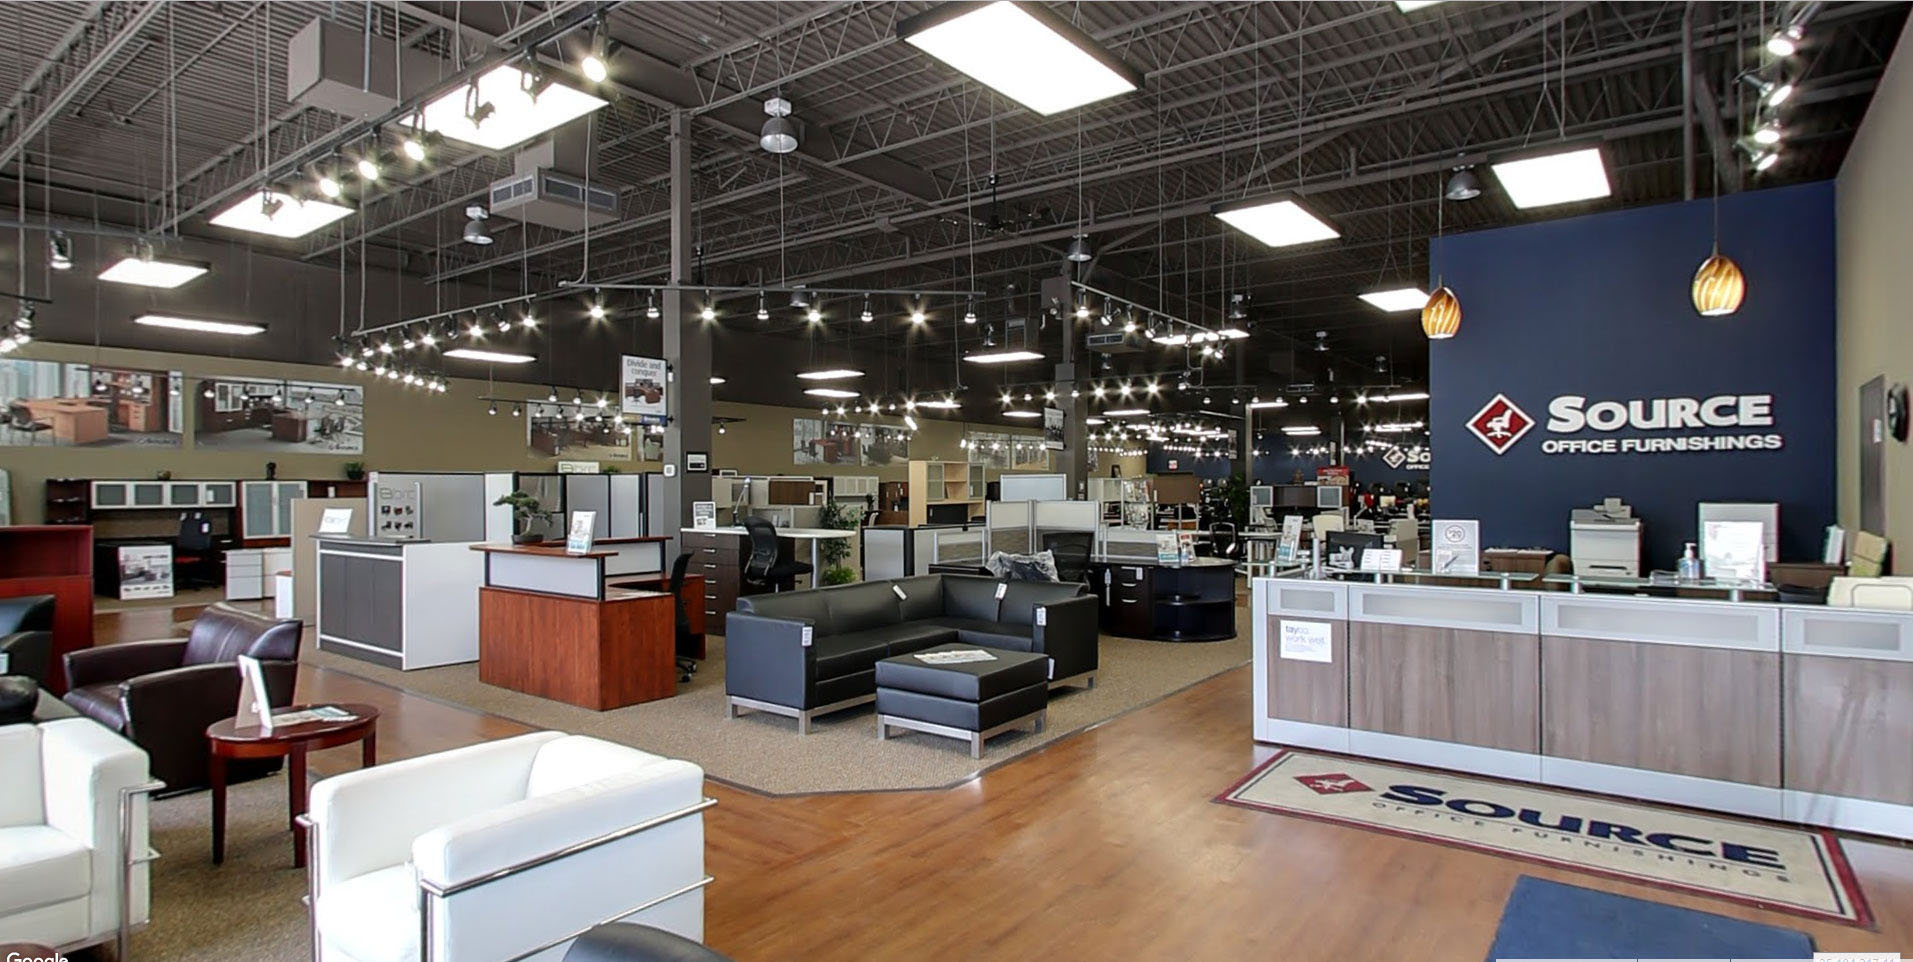 Furniture Markham Source Office Furniture Markham Store Visit Our